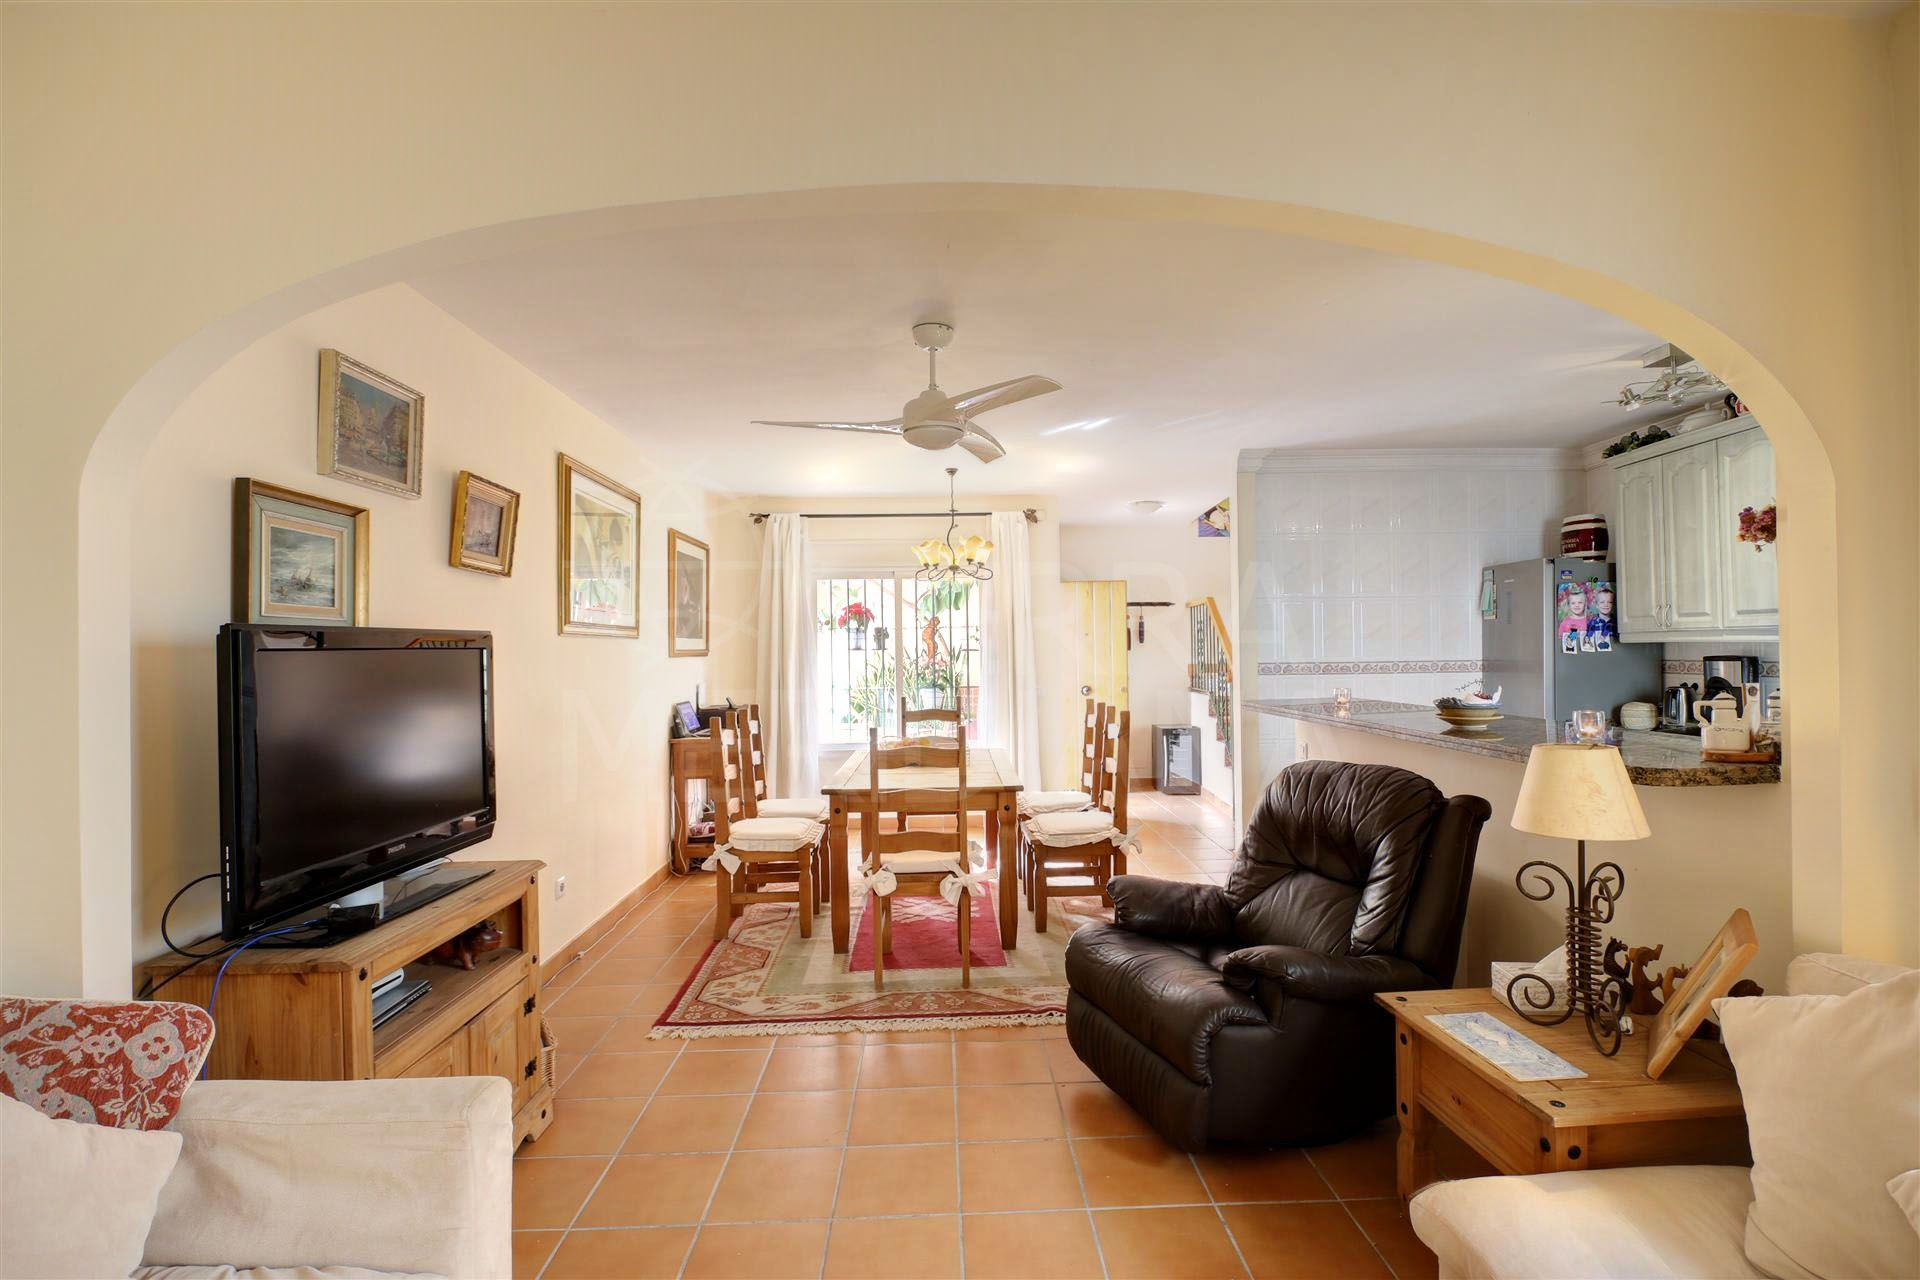 Townhouse for sale in Estepona, within a gated complex with private garage less than 100m from the beach